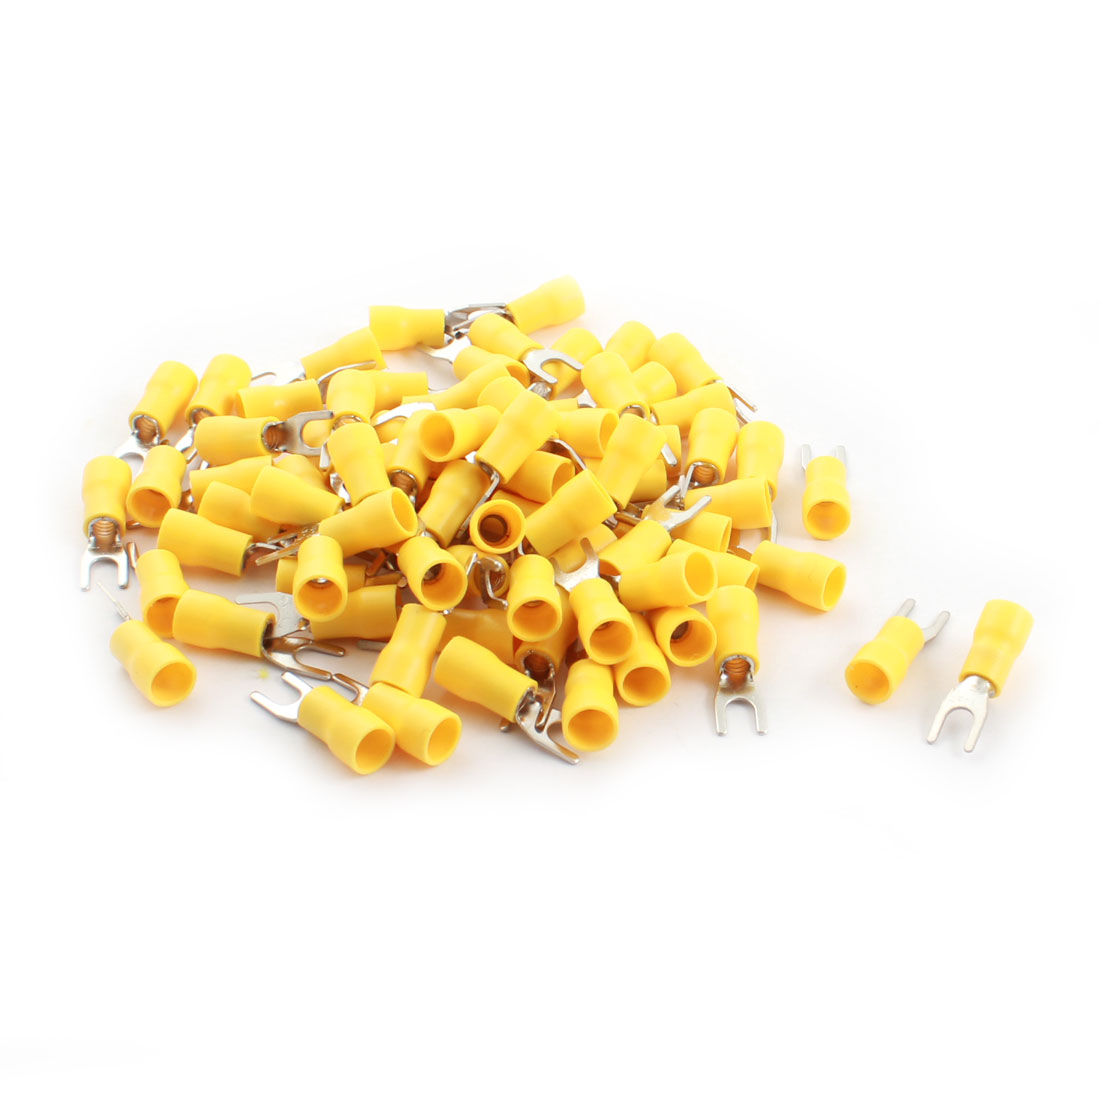 80Pcs SVS5.5-4 48A 12-10AWG Yellow Pre Insulated Electrical Furcate Fork Terminal Cable Connector 6.4mm Dia